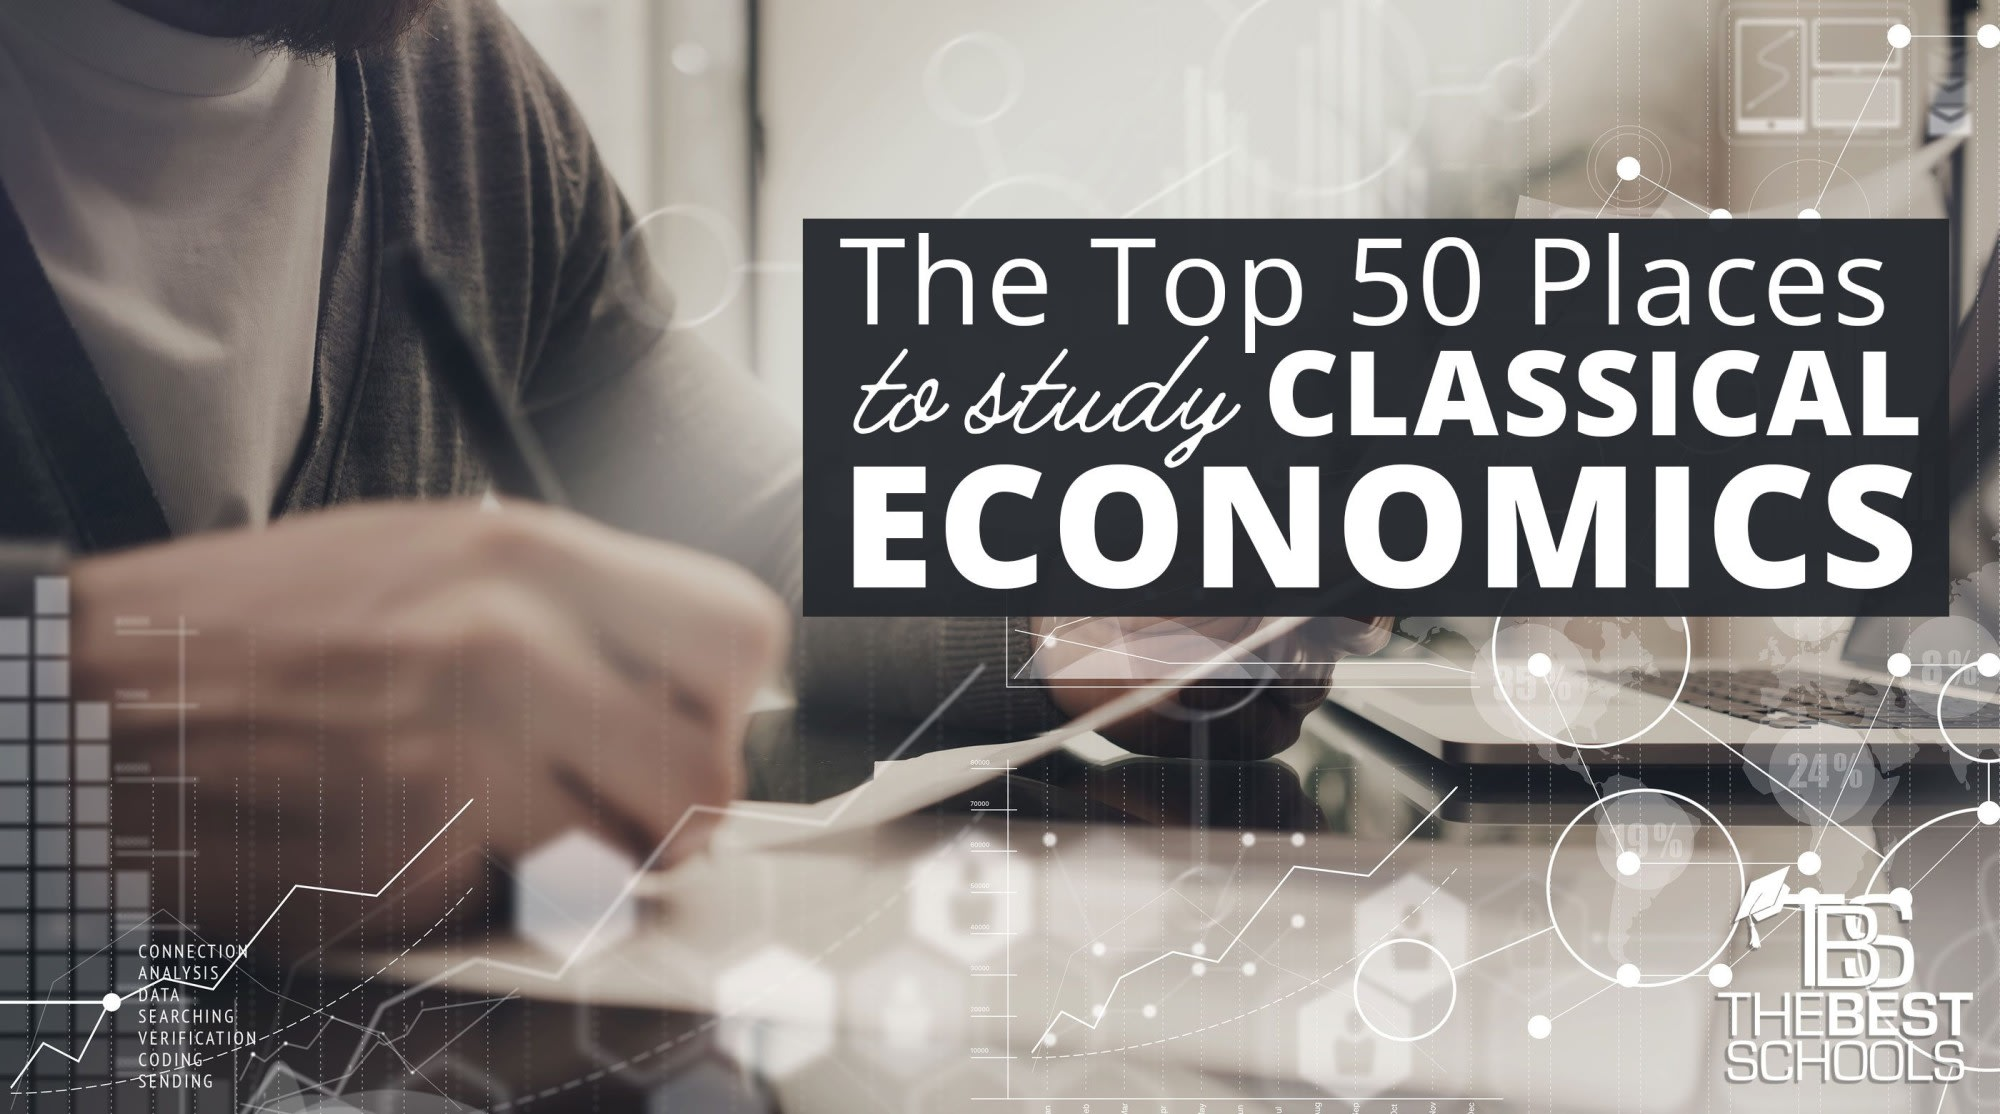 The Top 50 Places to Study Classical Economics